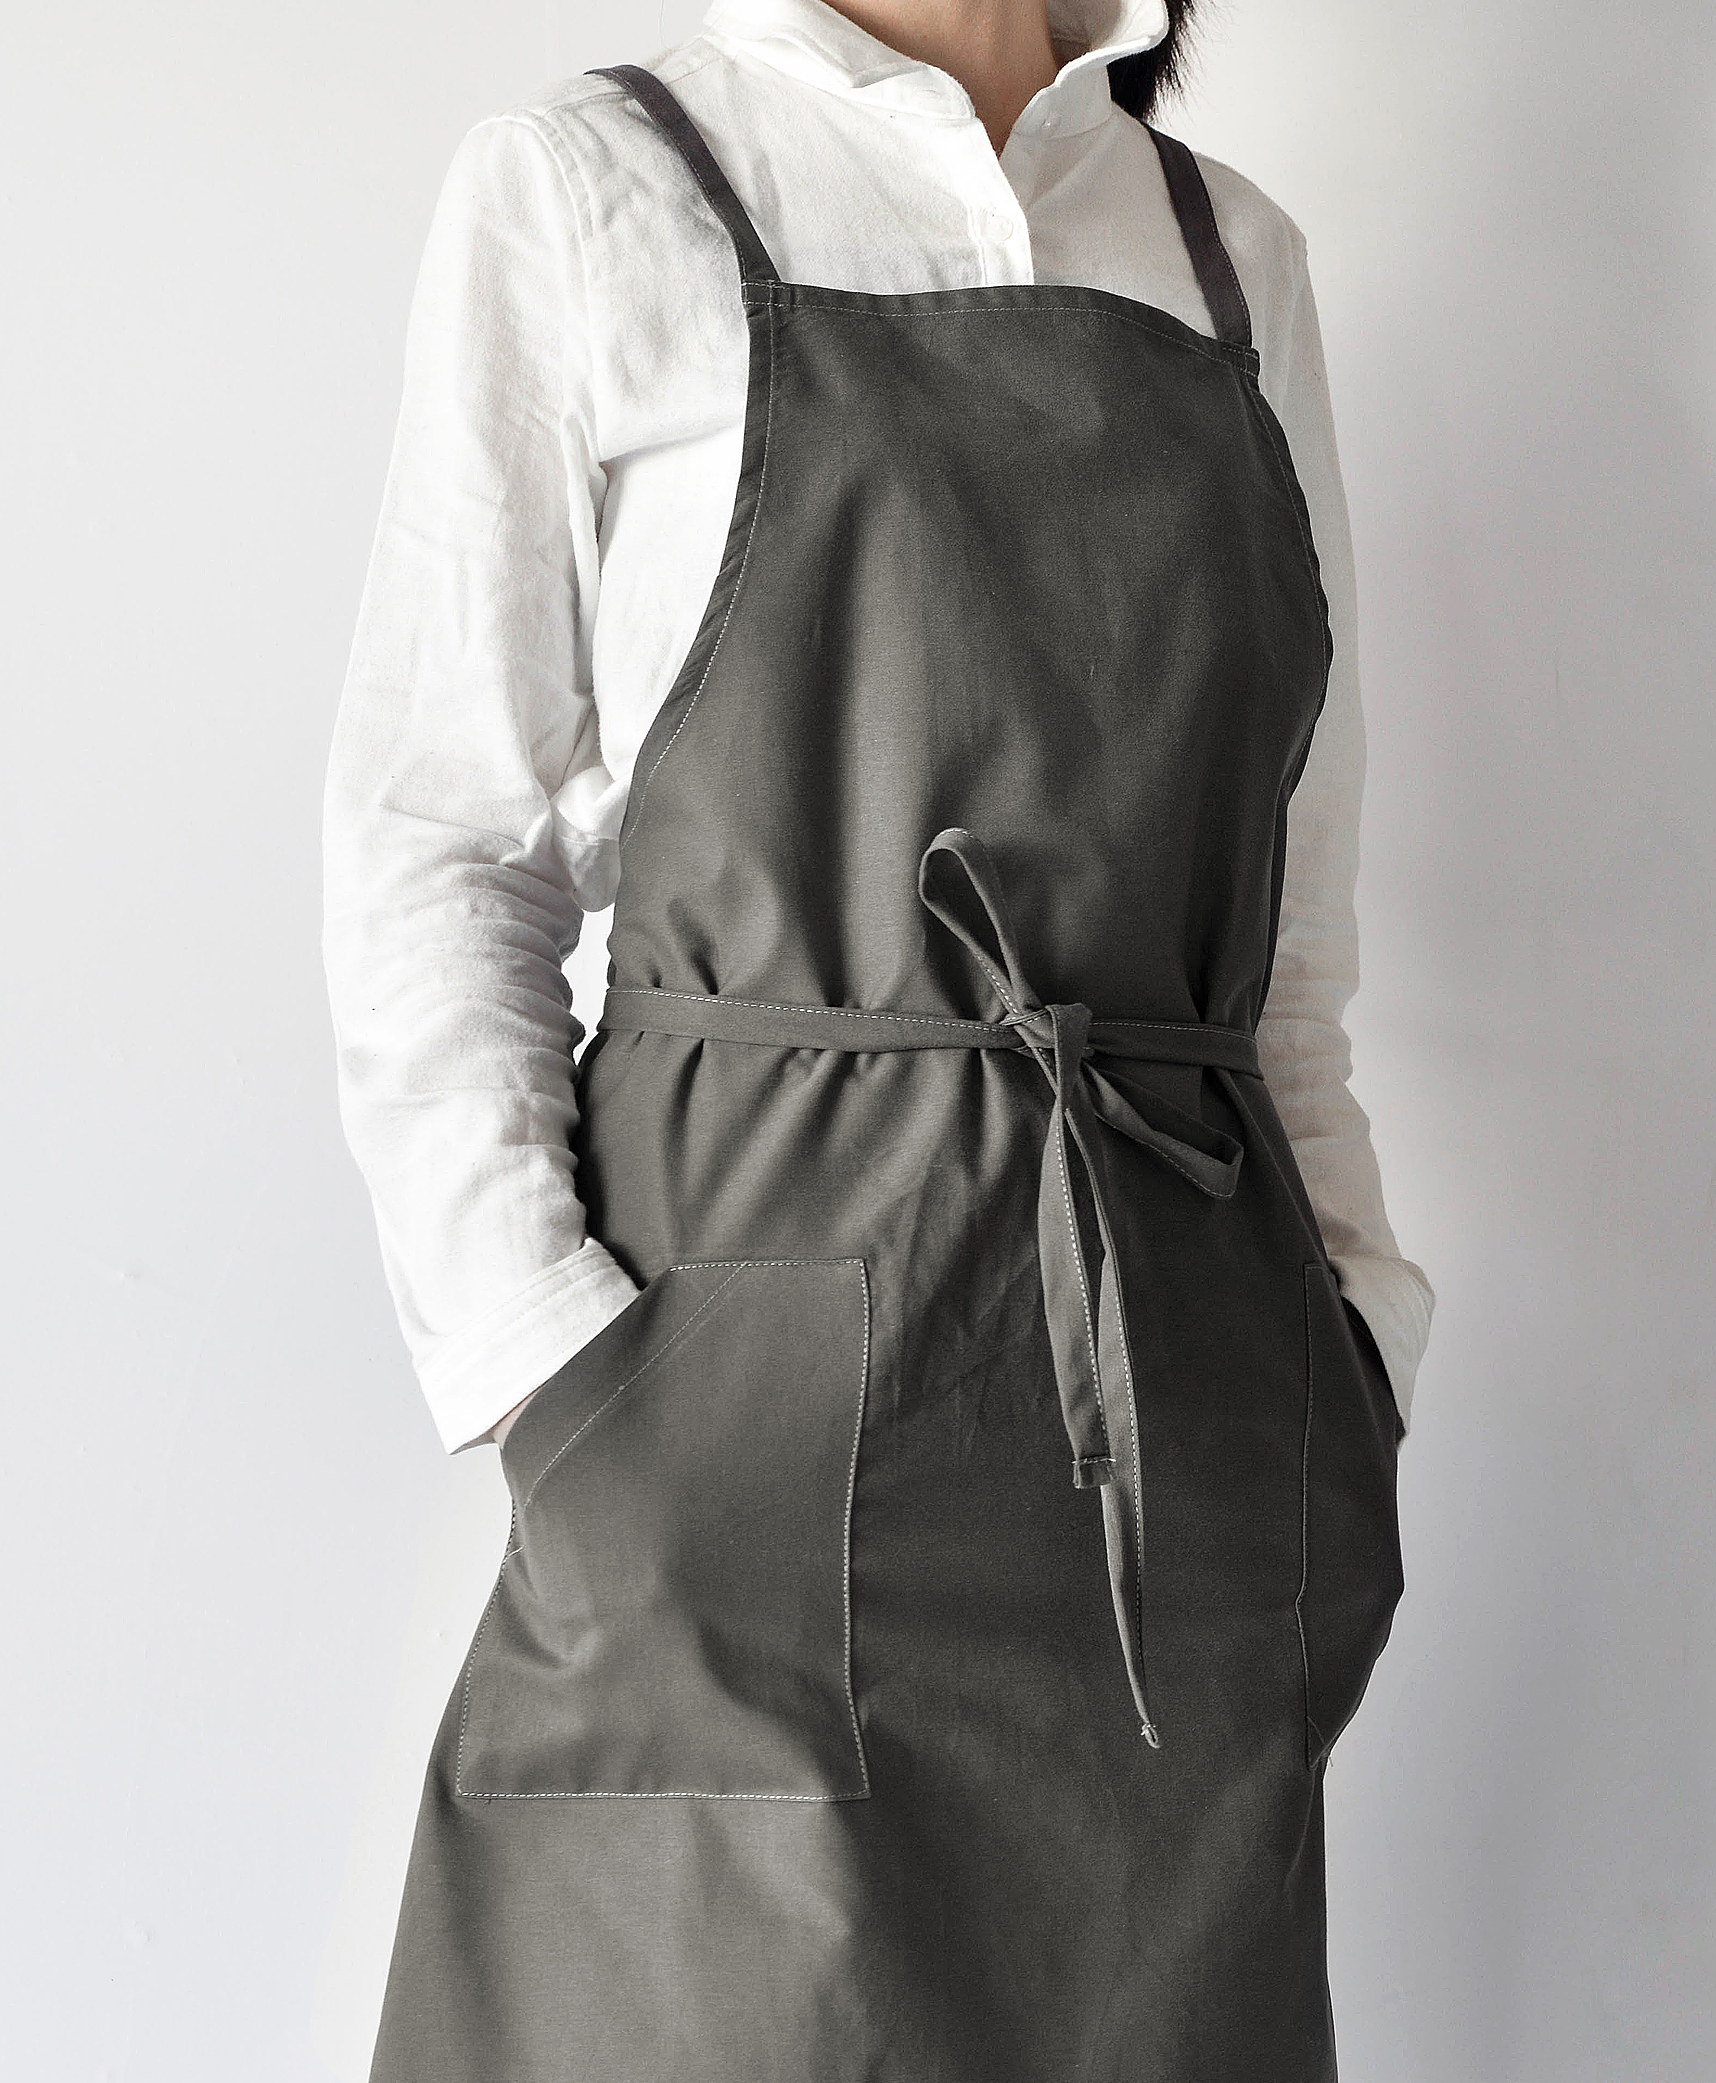 Women Casual Japanese Style Cotton Aprons Dress with Pocket